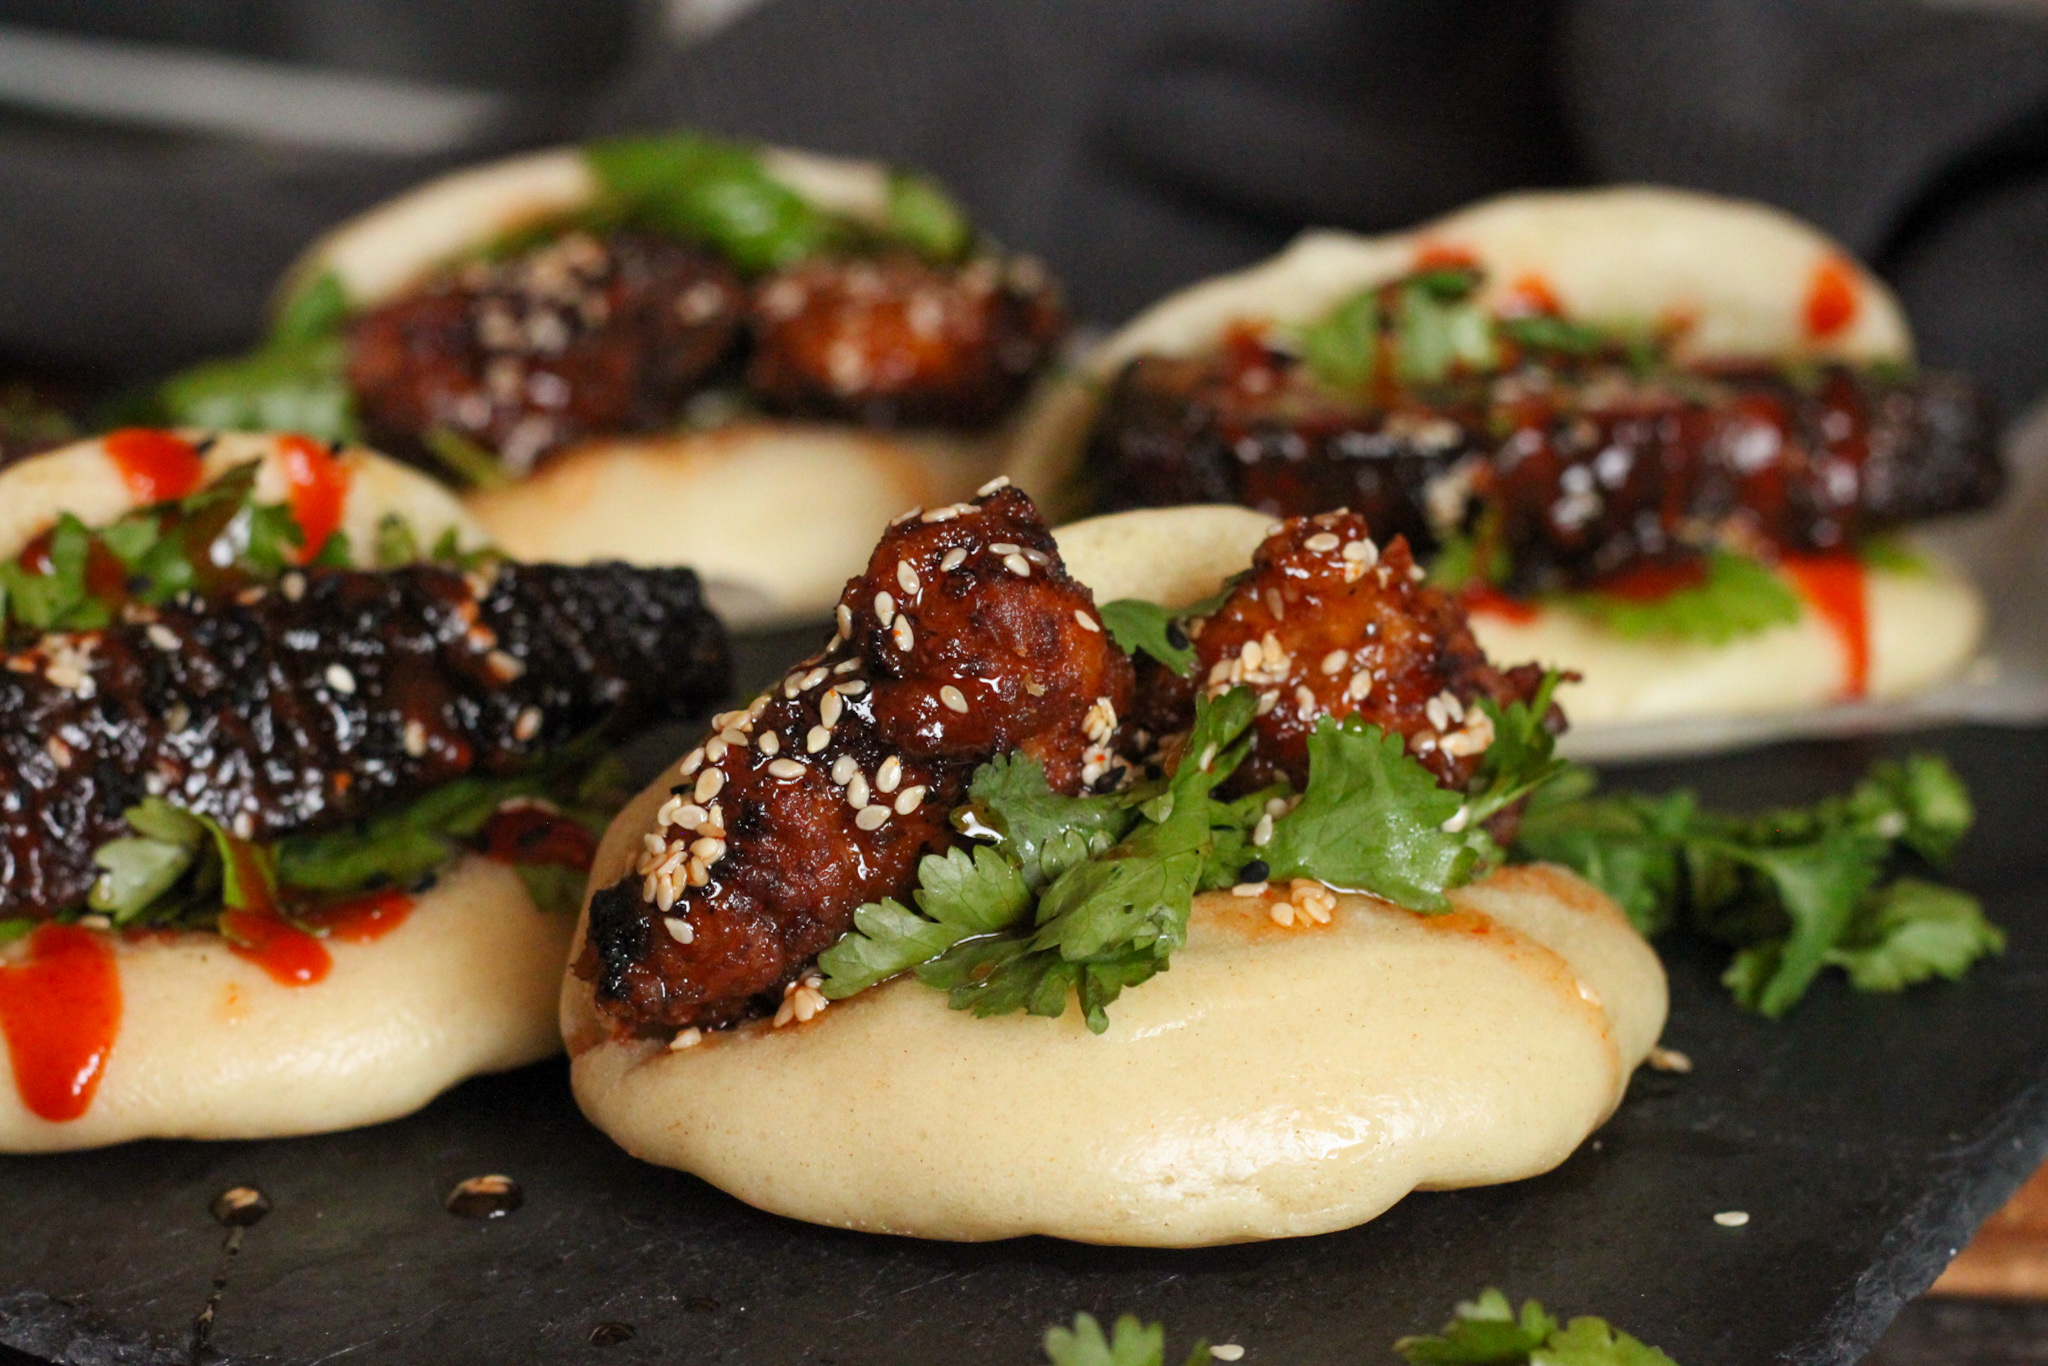 Make Your Own Steamed Bao Buns at Home